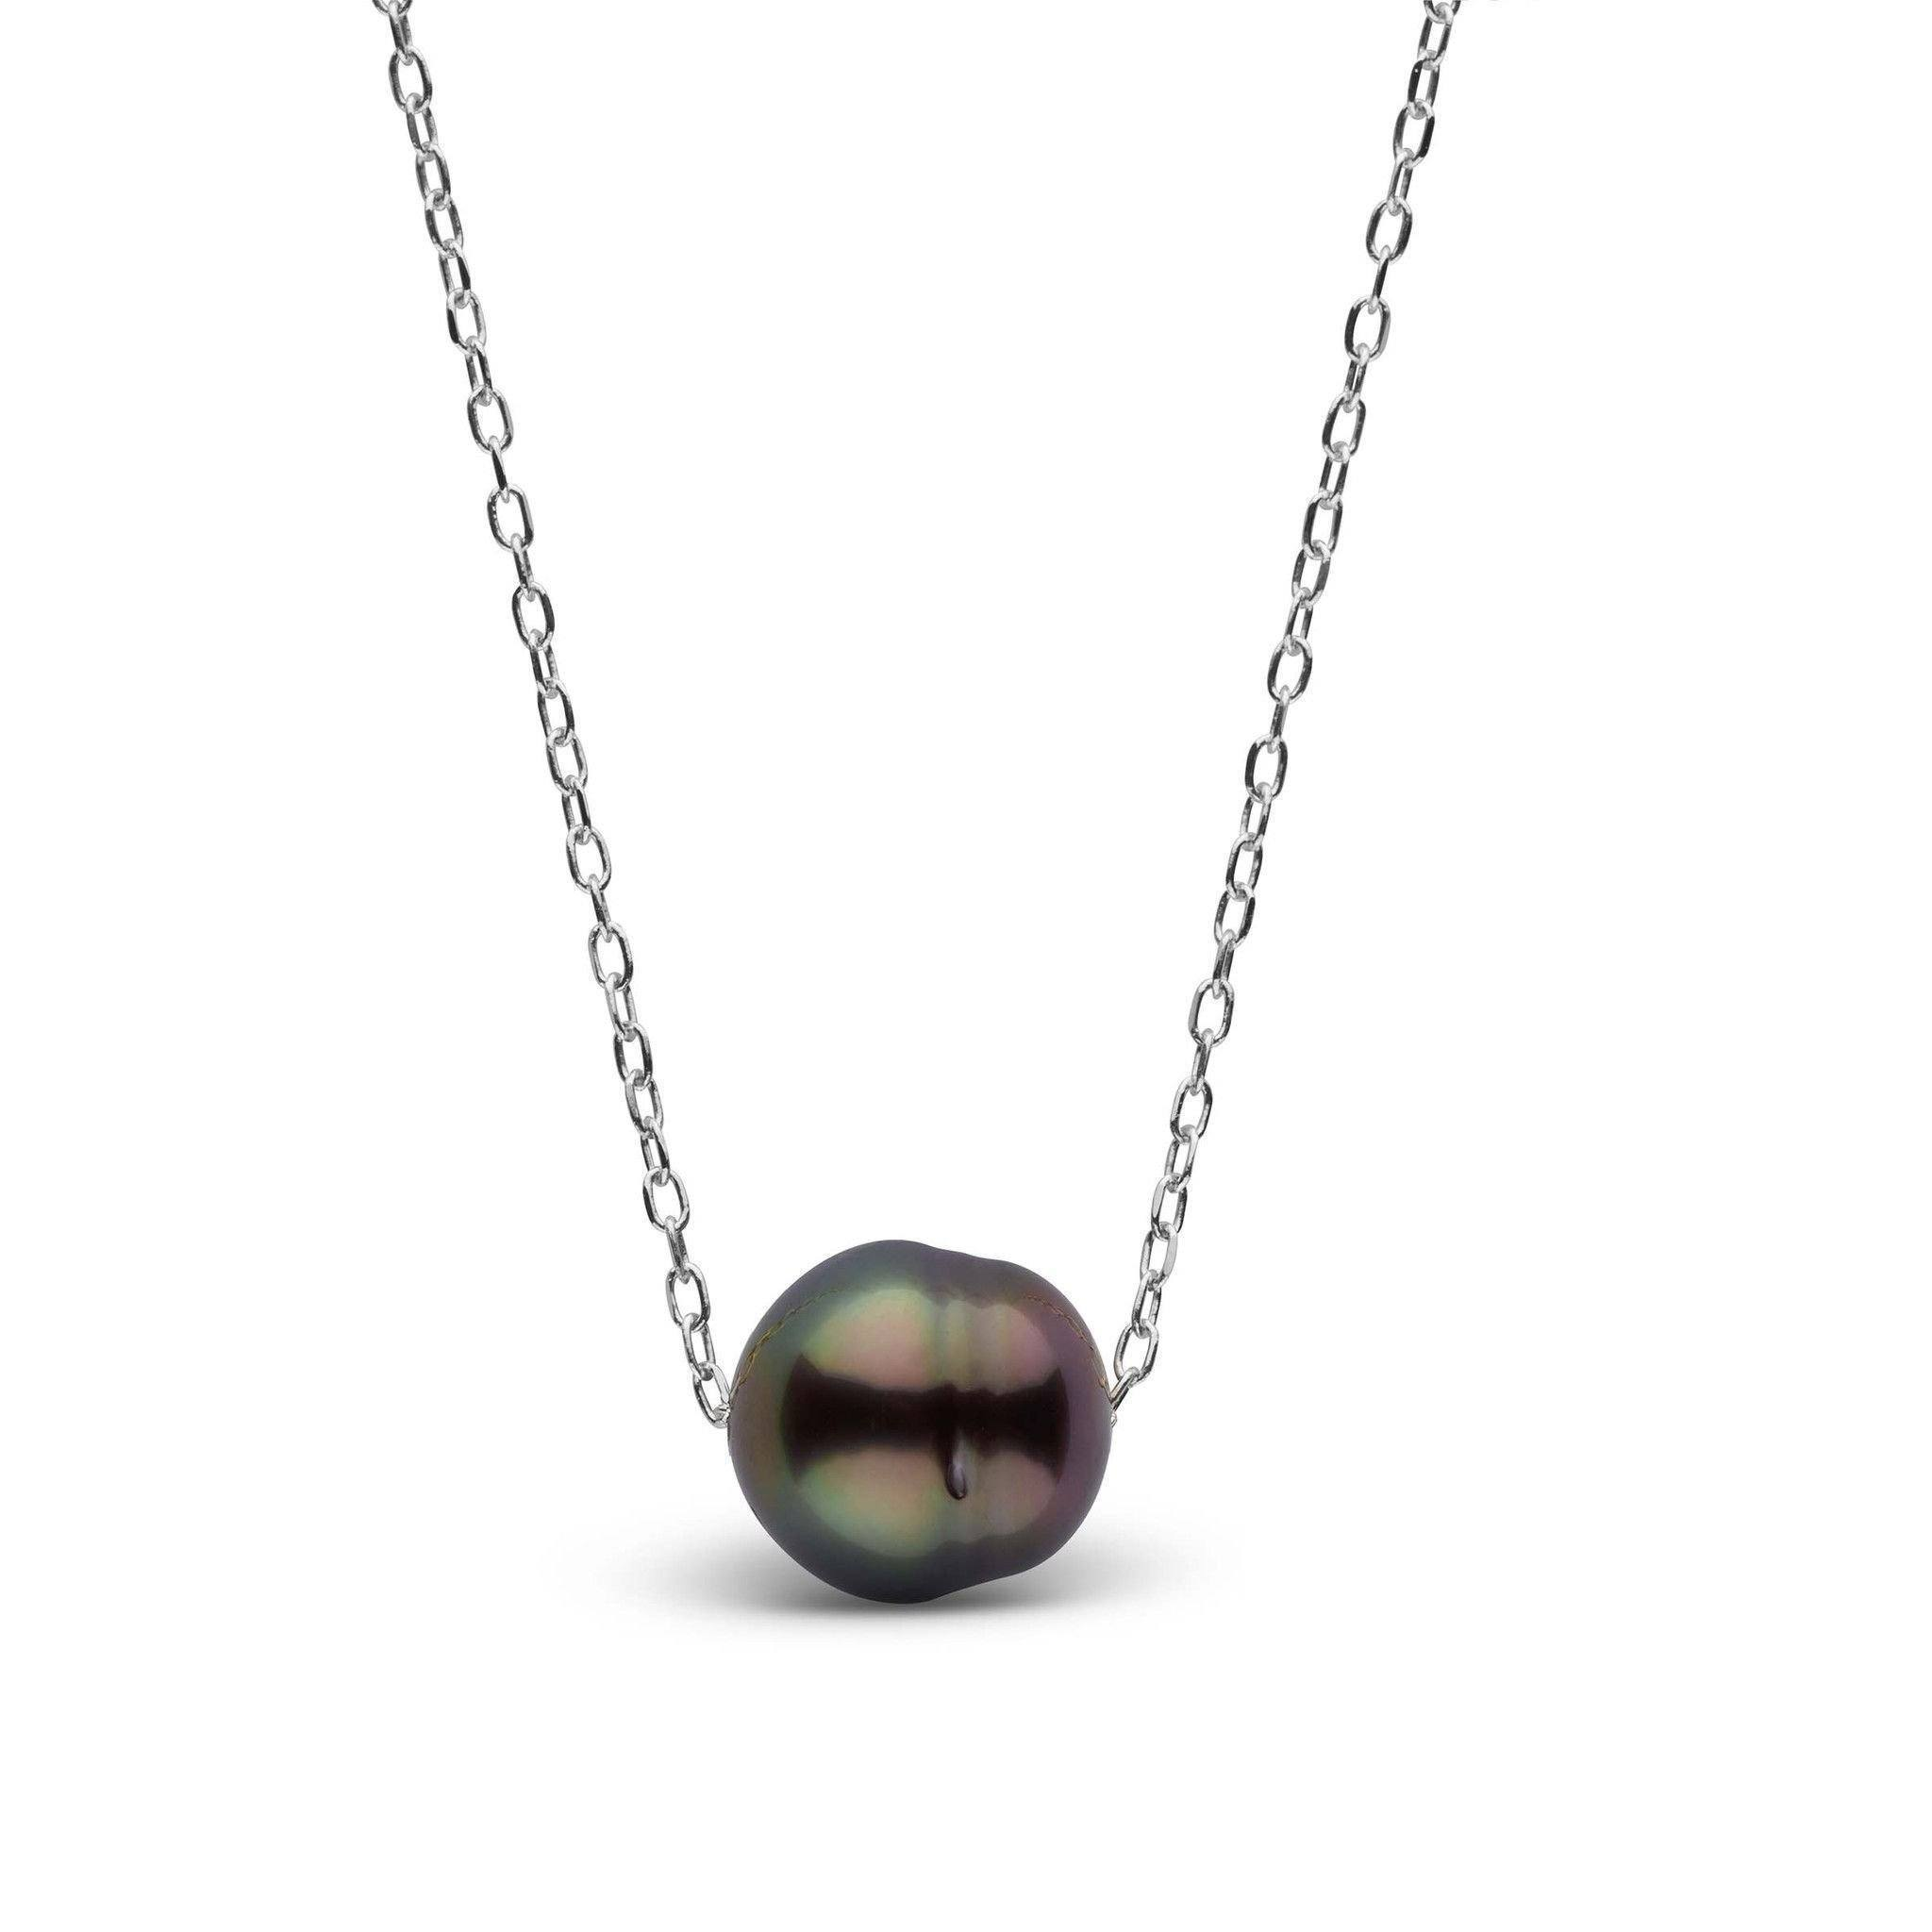 18 Inch Cherish Collection 9.0-10.0 mm AAA Tahitian Baroque Pearl Necklace